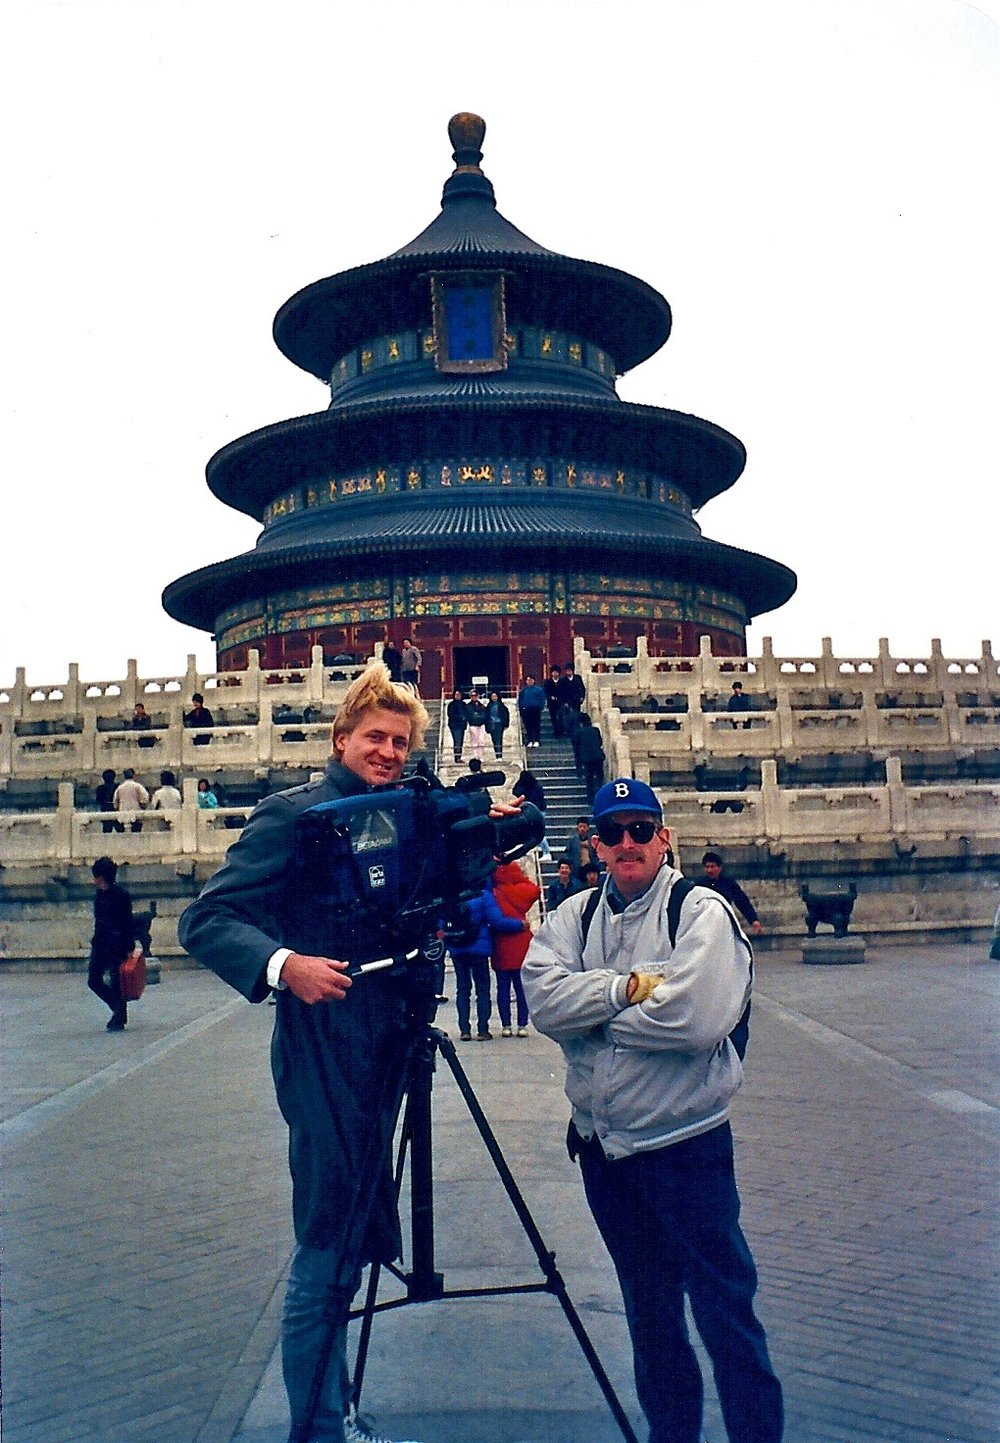 Shooting documentaries in Beijing, China with uber-producer Craig Forrest in front of a Chinese missile silo.